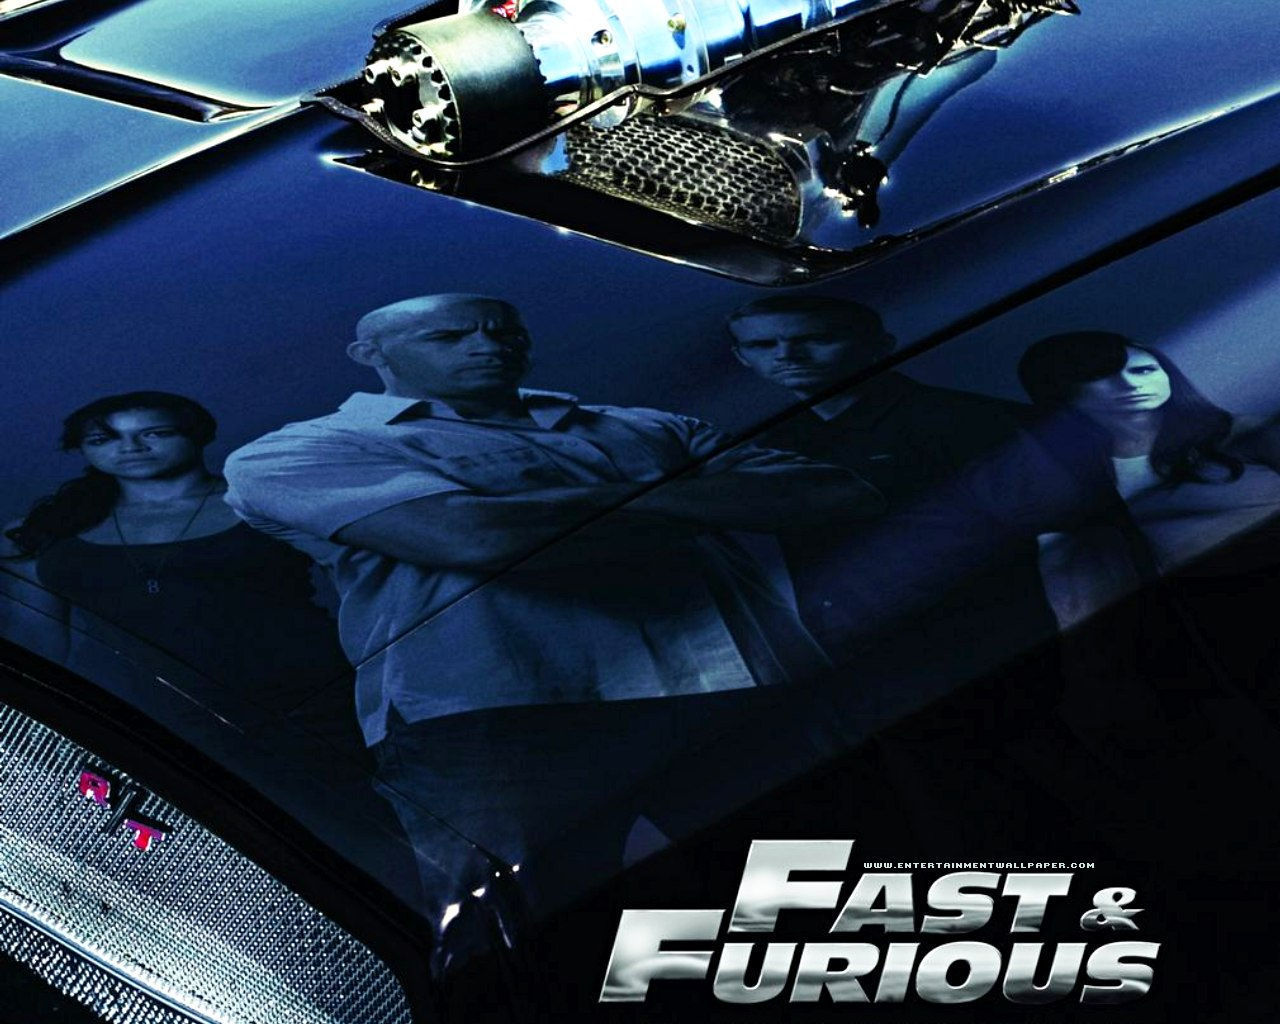 fast and furiousimages4597881titlefast furious wallpaper wallpaper 1280x1024